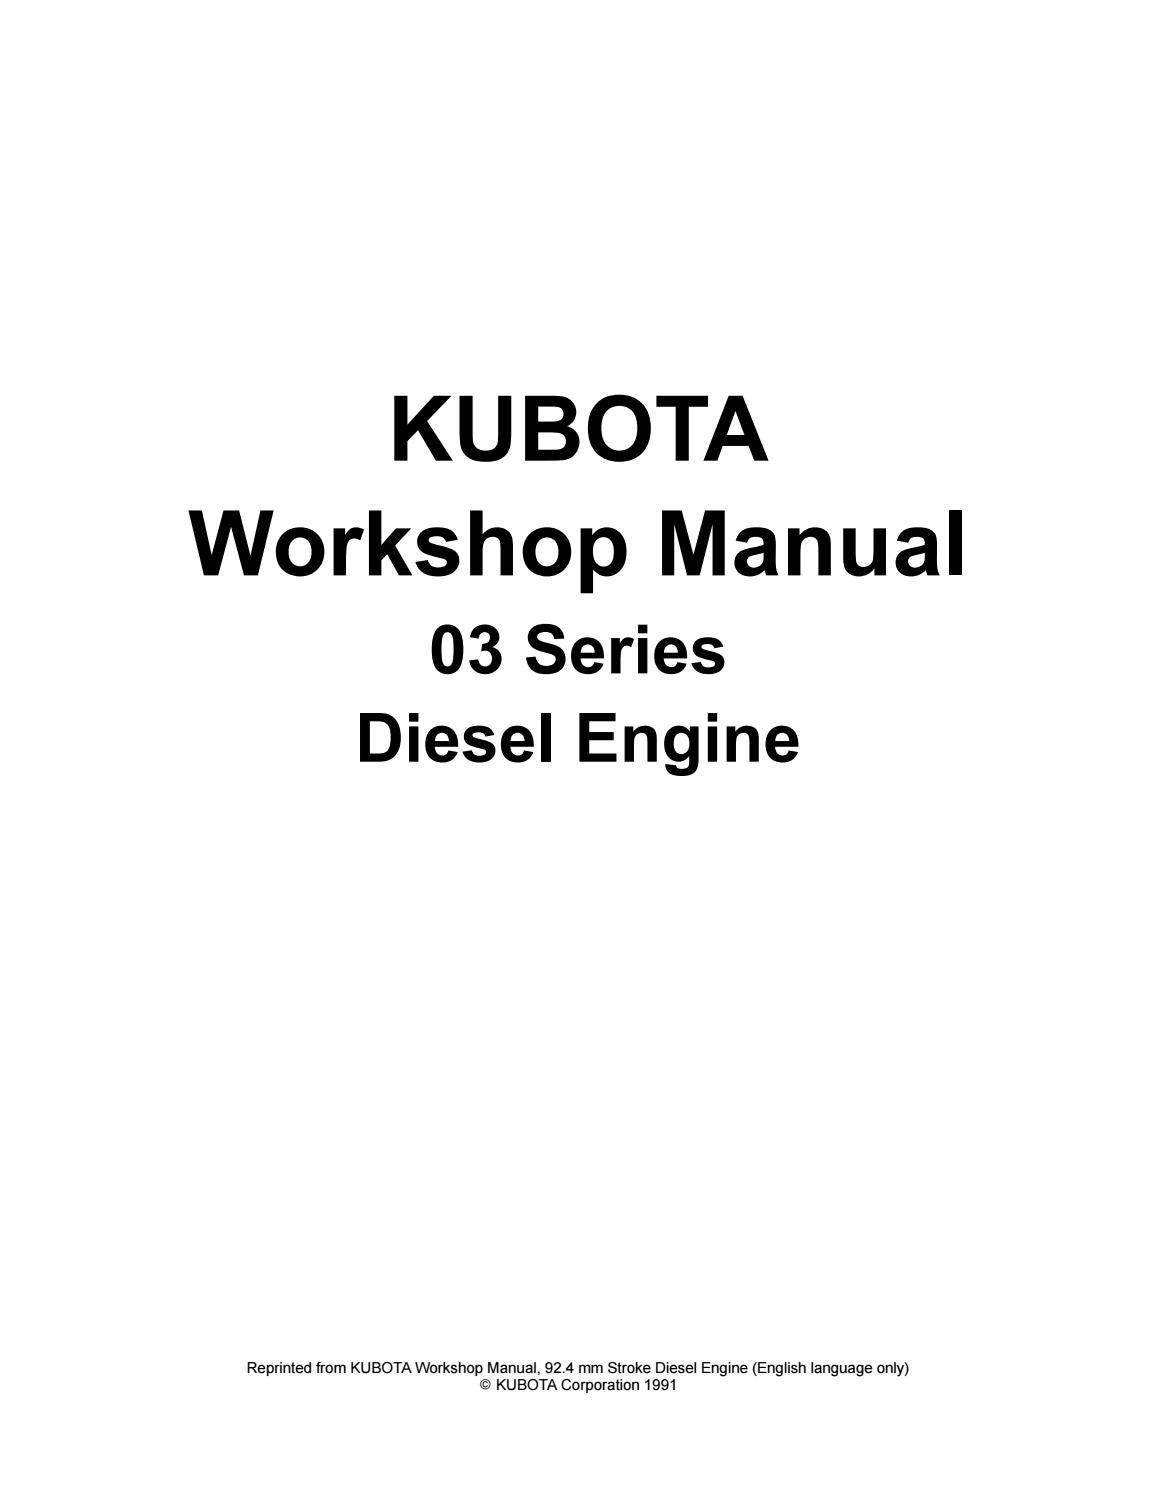 Kubota v2203 b(e) diesel engine service repair manual by